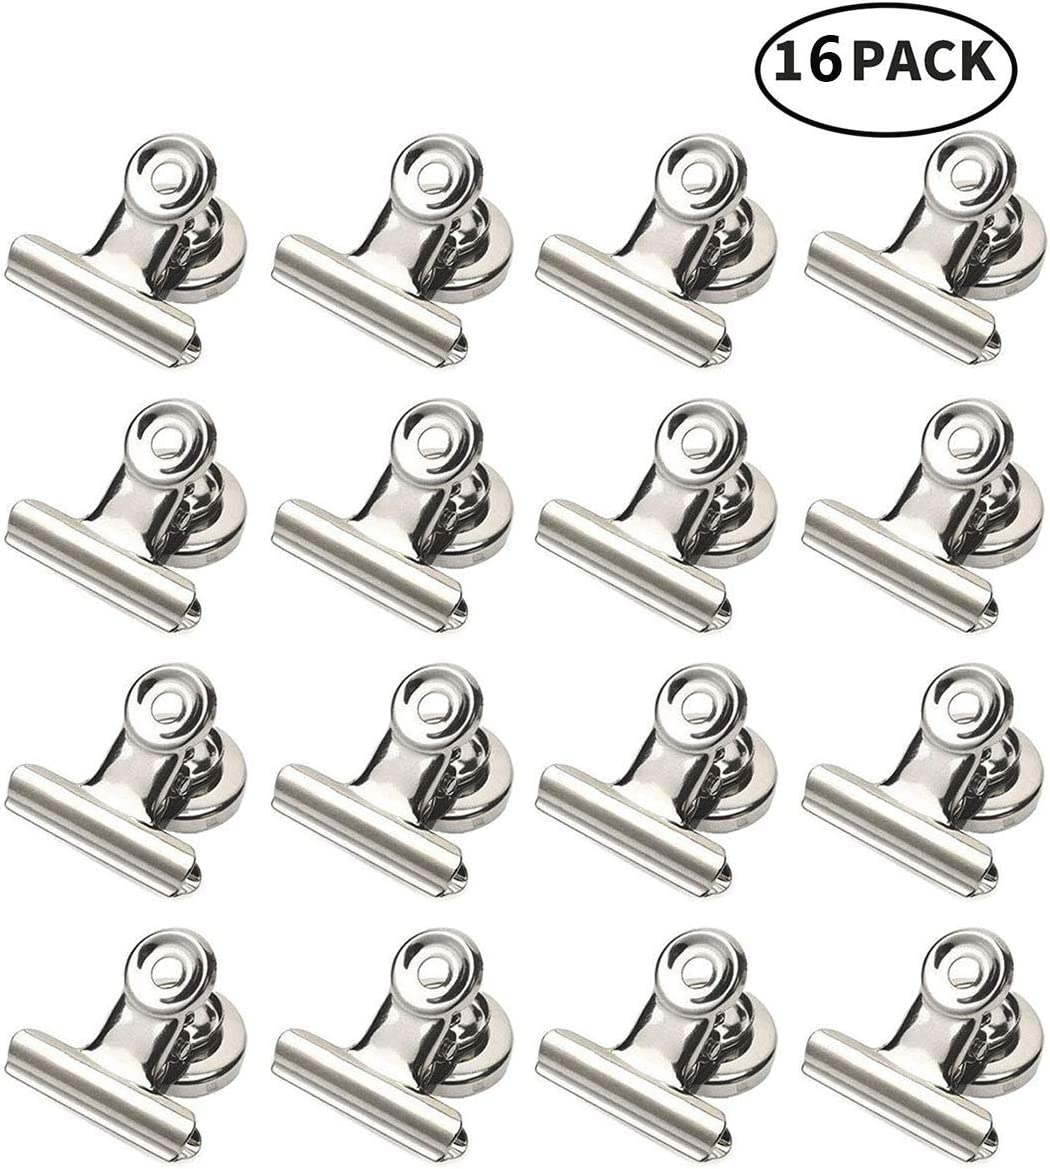 Magnet Clips Heavy Duty - Width 1.5 inch Strong Metal Magnetic Clips for Refrigerator 16 Pack, Diameter 1 inch Magnetic Clips for Whiteboard, Office Magnets, Photo Magnets